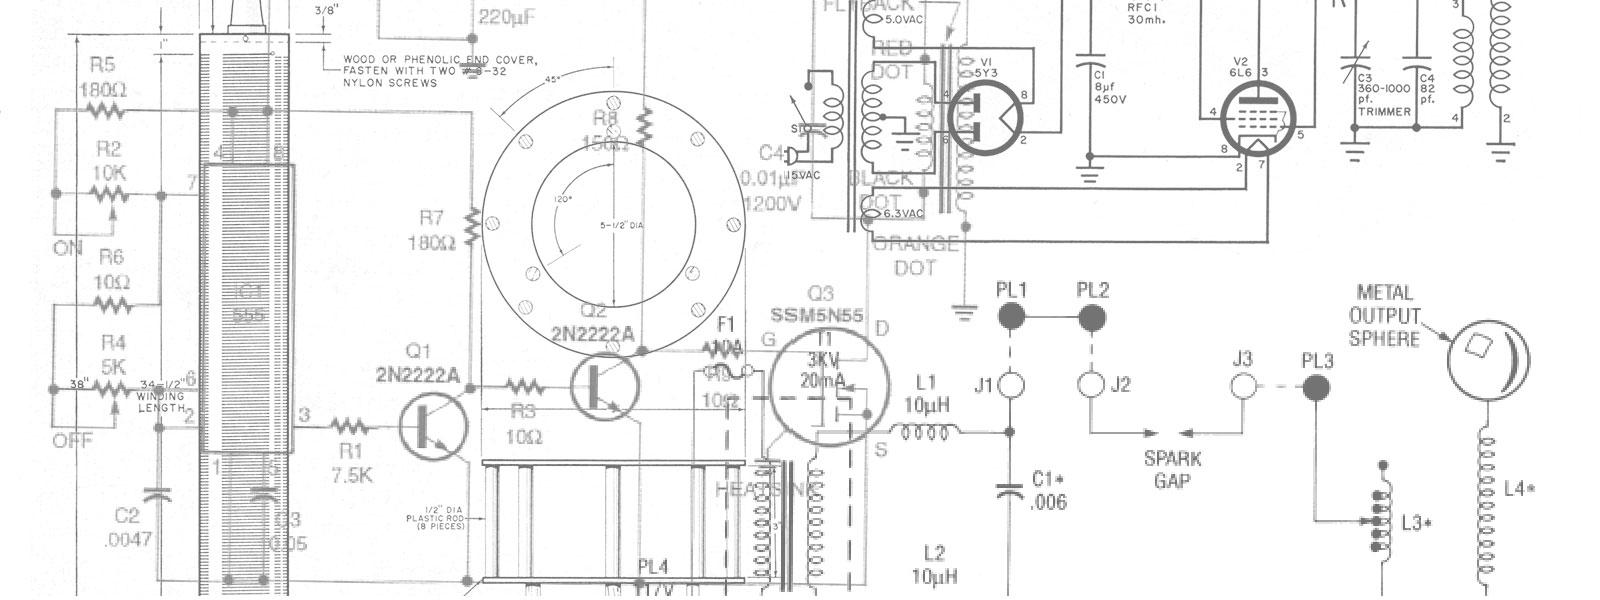 Schematics from Tesla coil plans